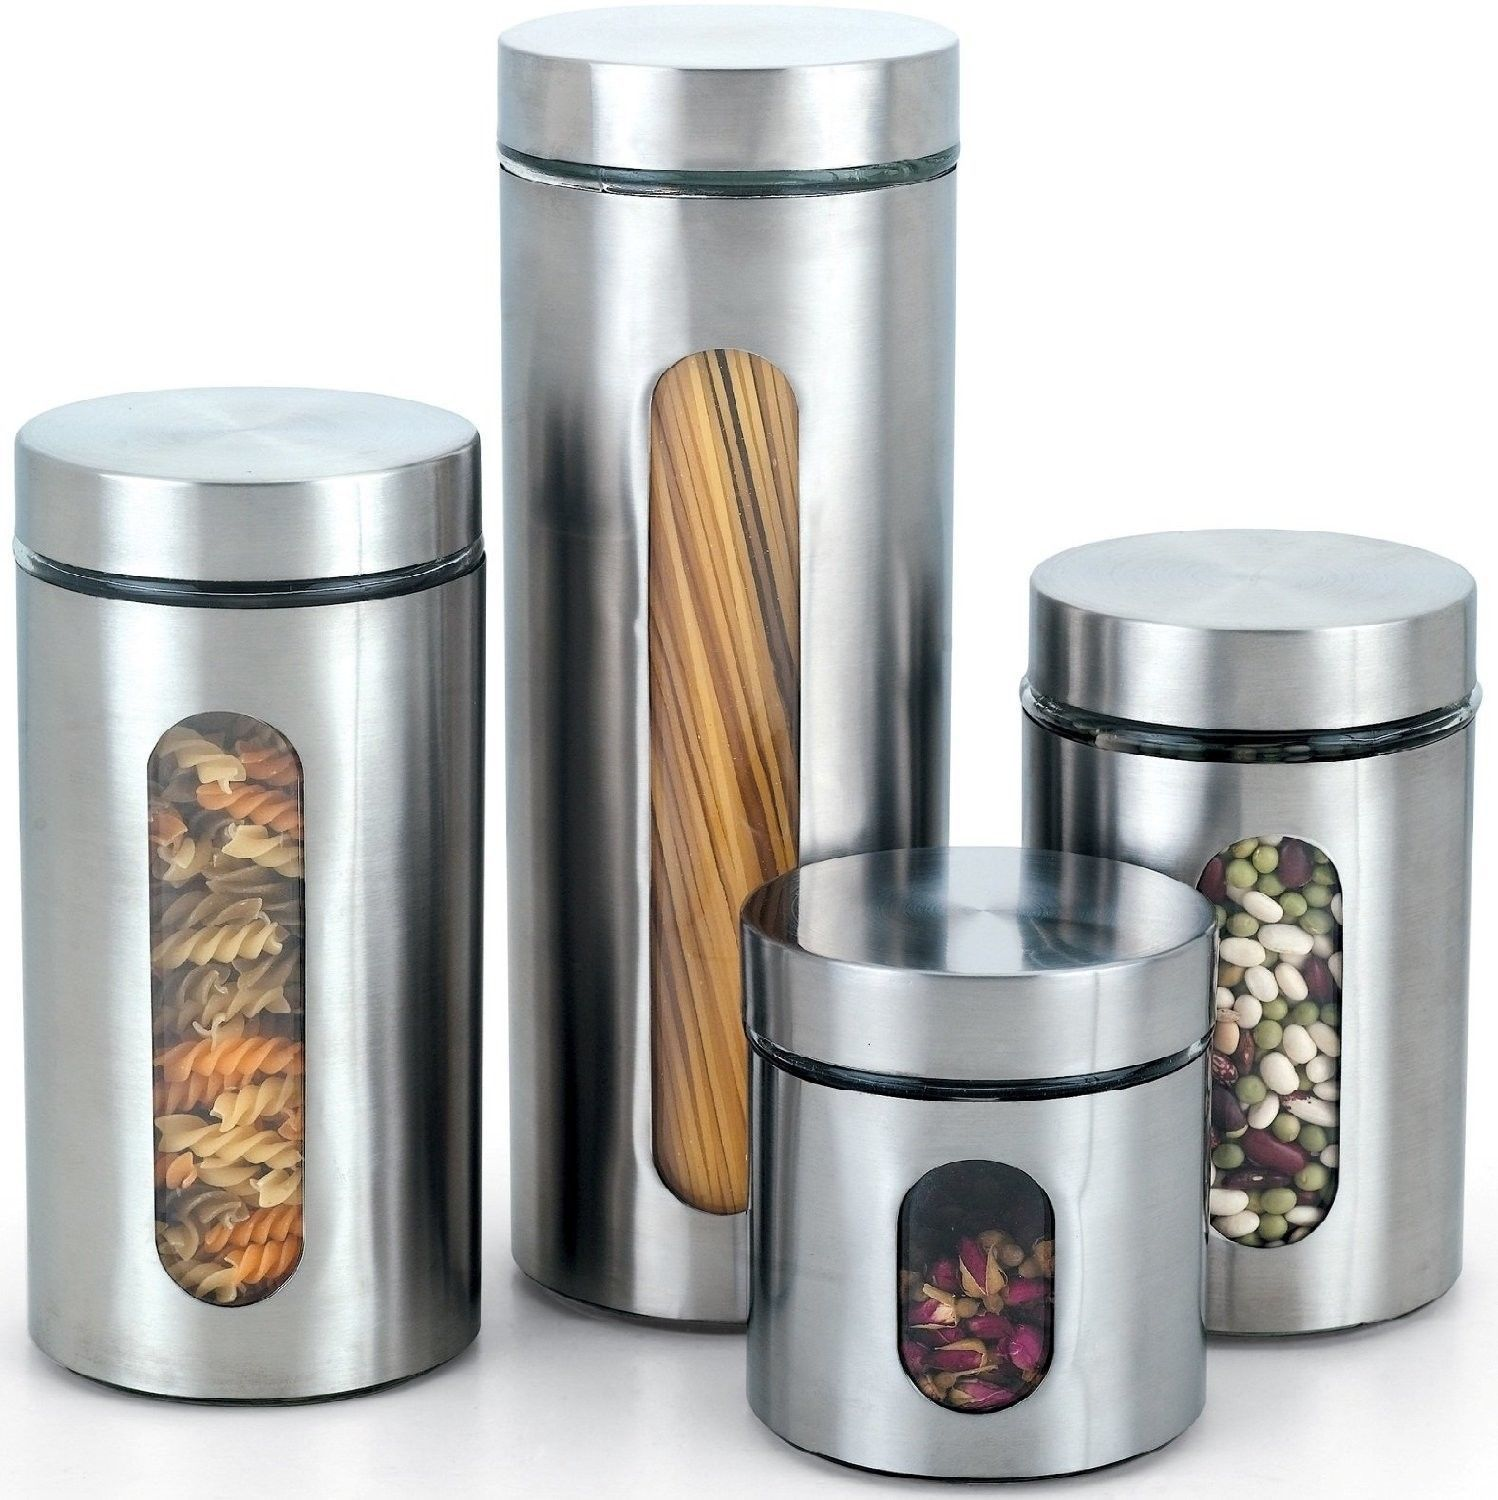 canisters and jars 20654 glass canister w stainless steel window